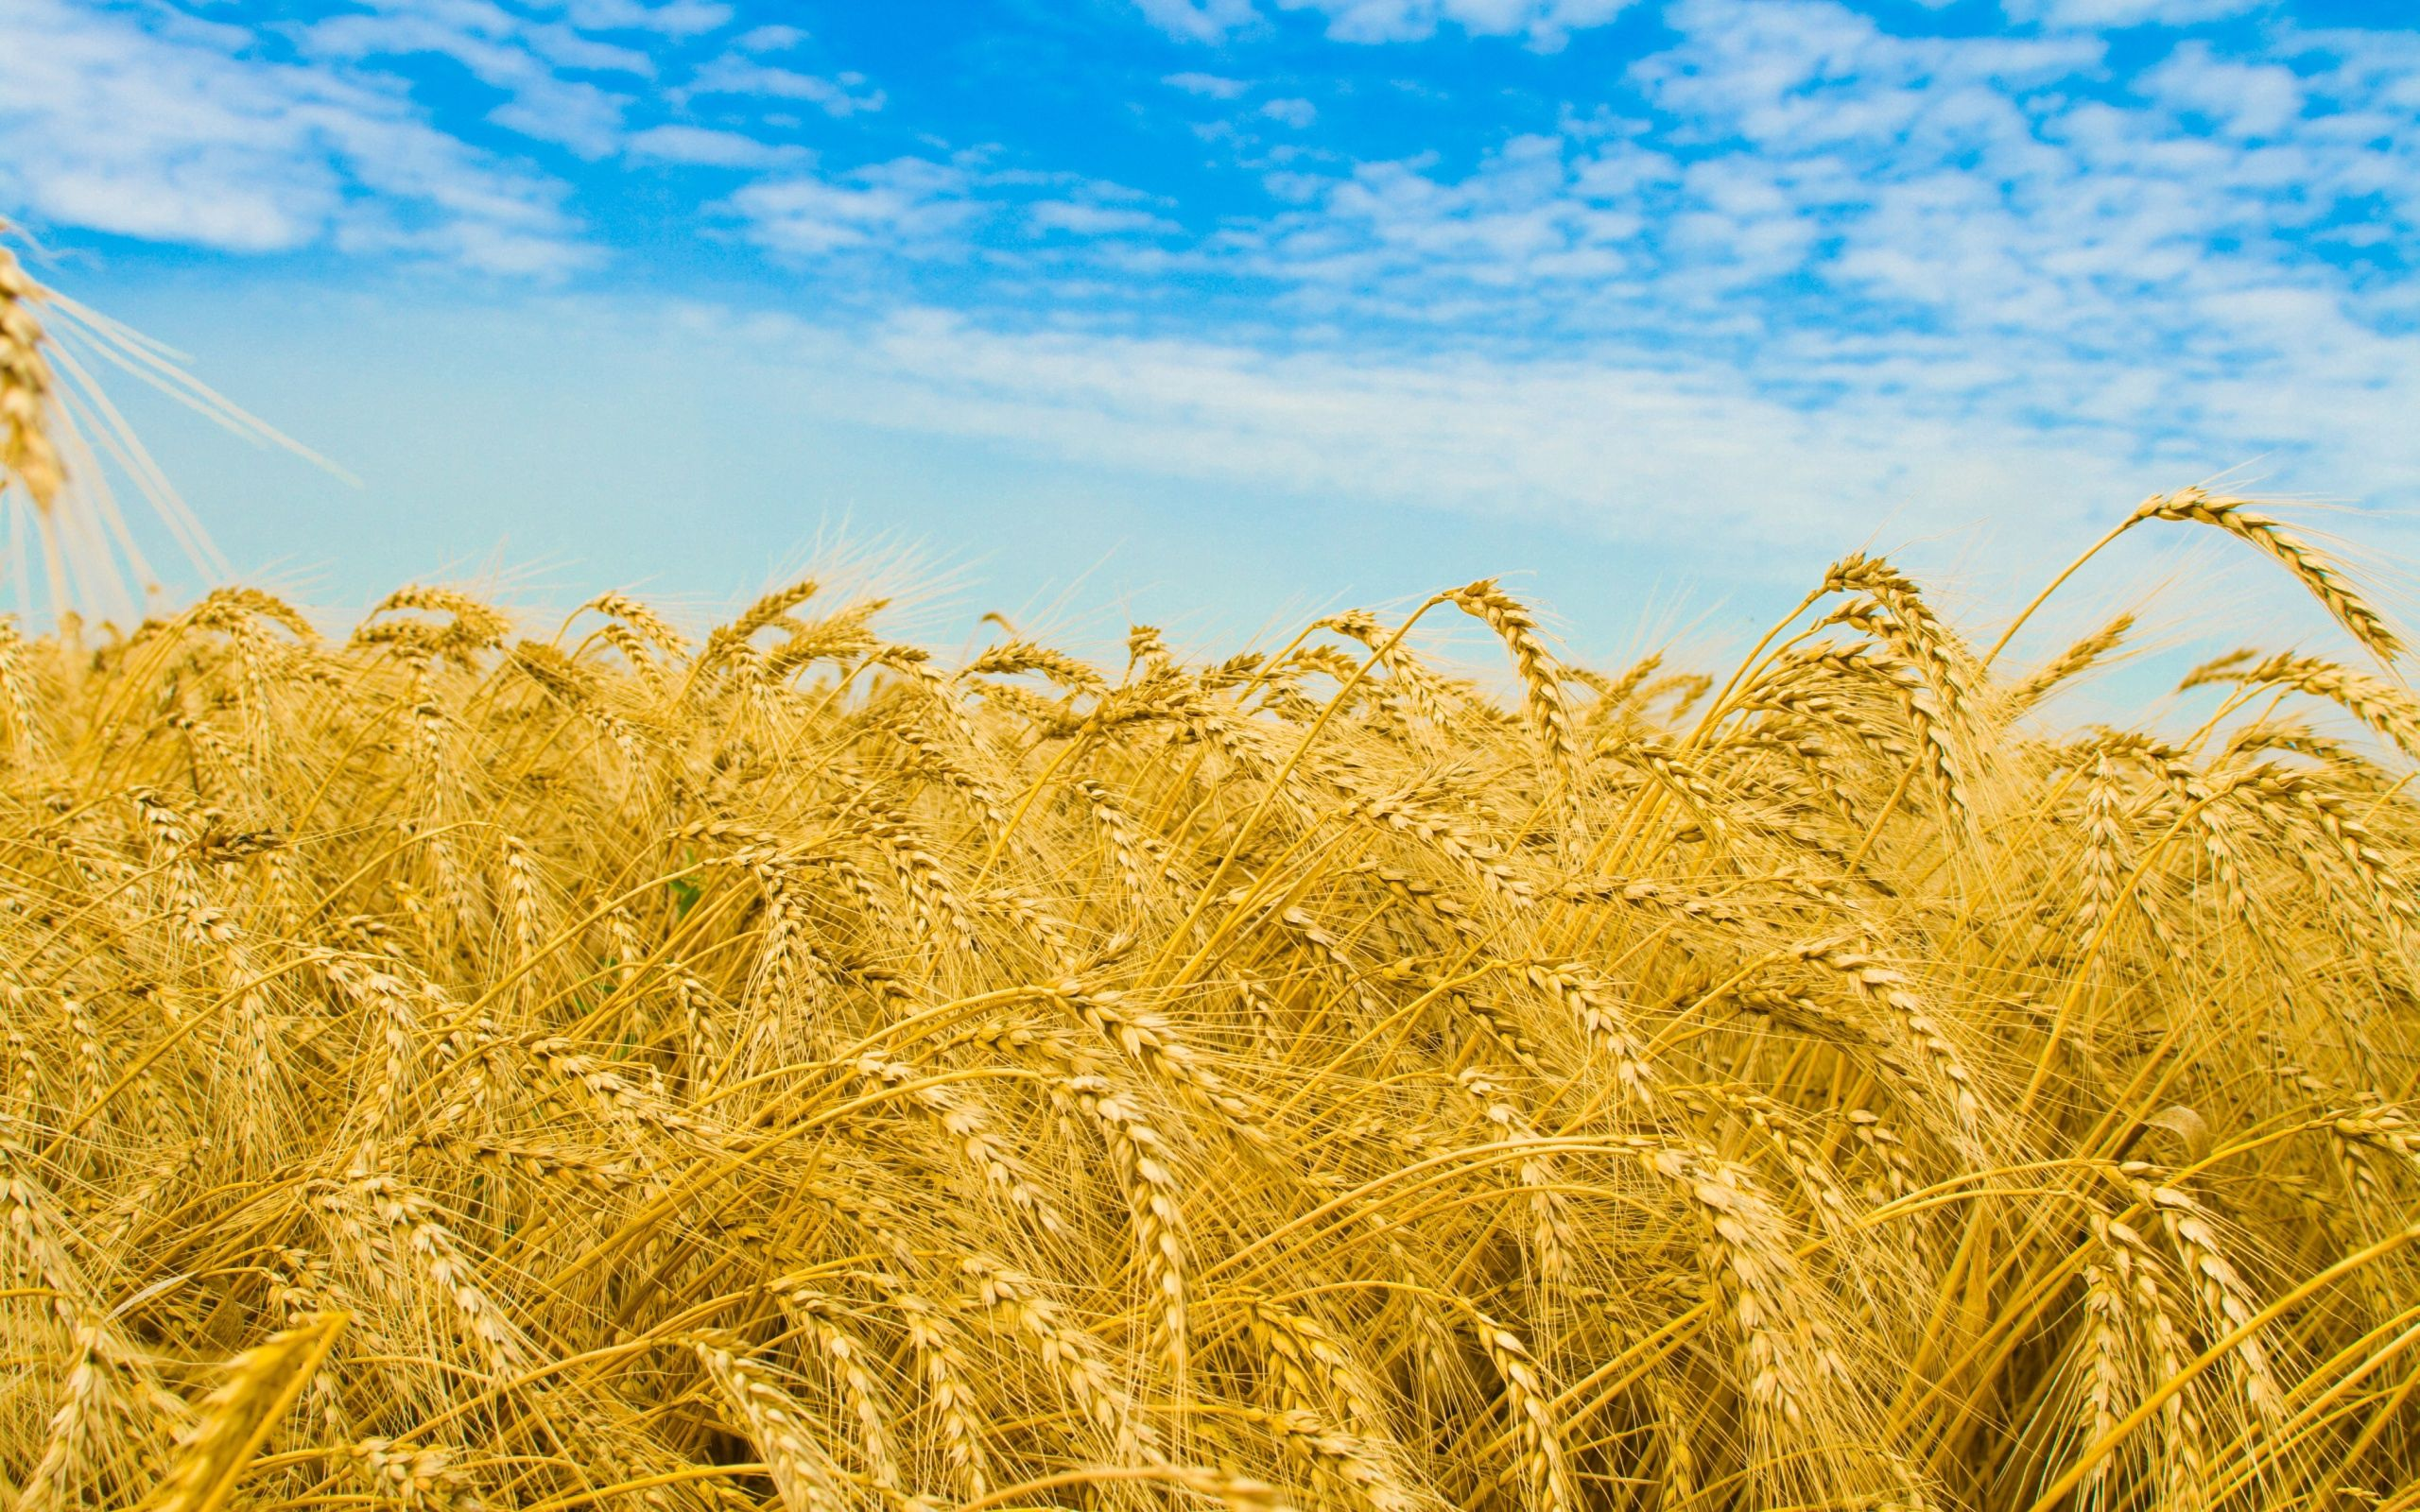 147510 Screensavers and Wallpapers Agriculture for phone. Download Nature, Sky, Field, Ears, Golden, Spikes, Rye, Agriculture pictures for free